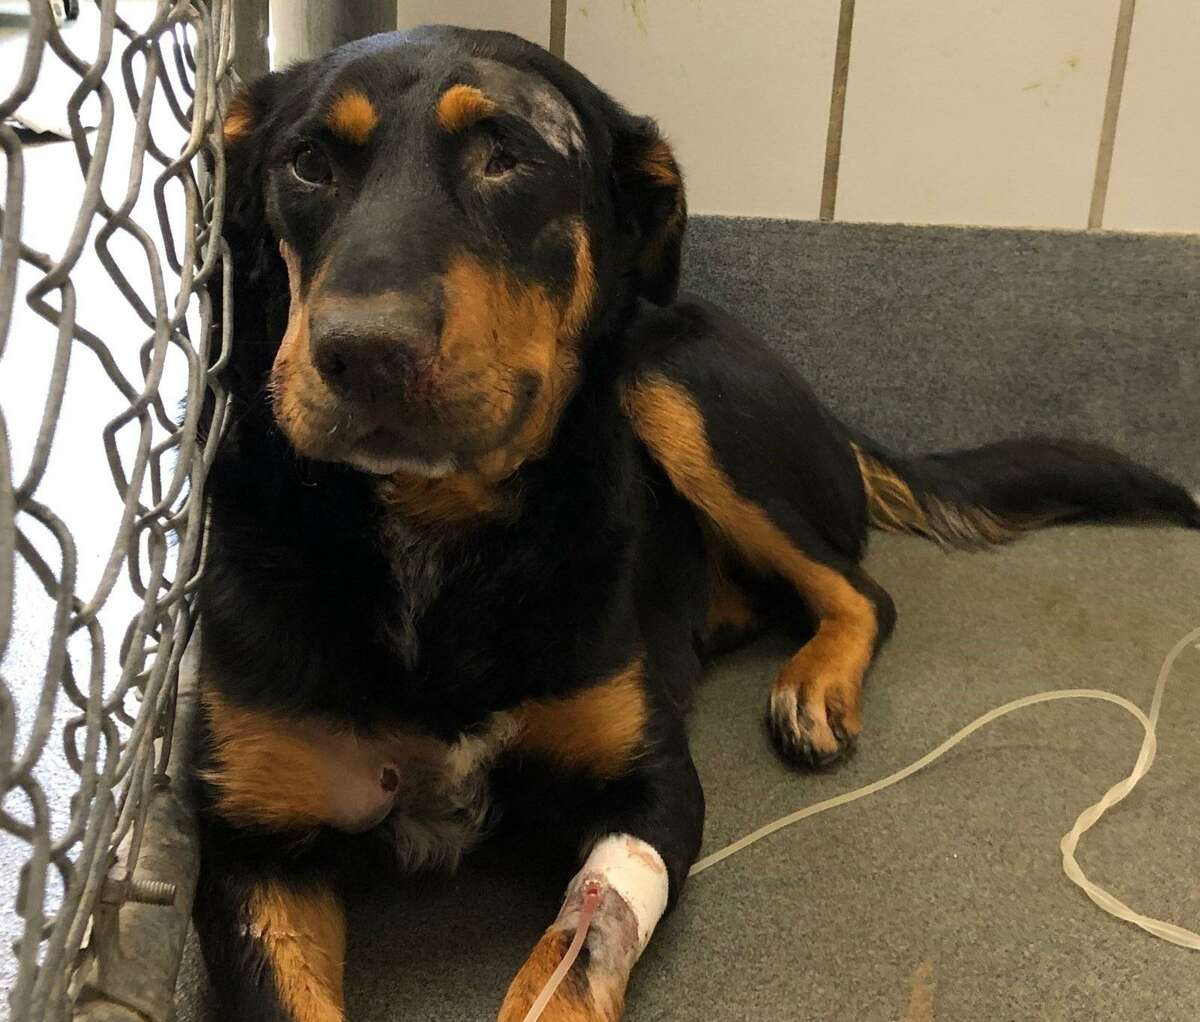 Paddie, a 1-year-old Rottweiler mix, is recovering from getting shot in the eye at Animal Care Services veterinary clinic. ACS cruelty investigators are working with rescue partners and the San Antonio Police Department to determine who shot the dog.